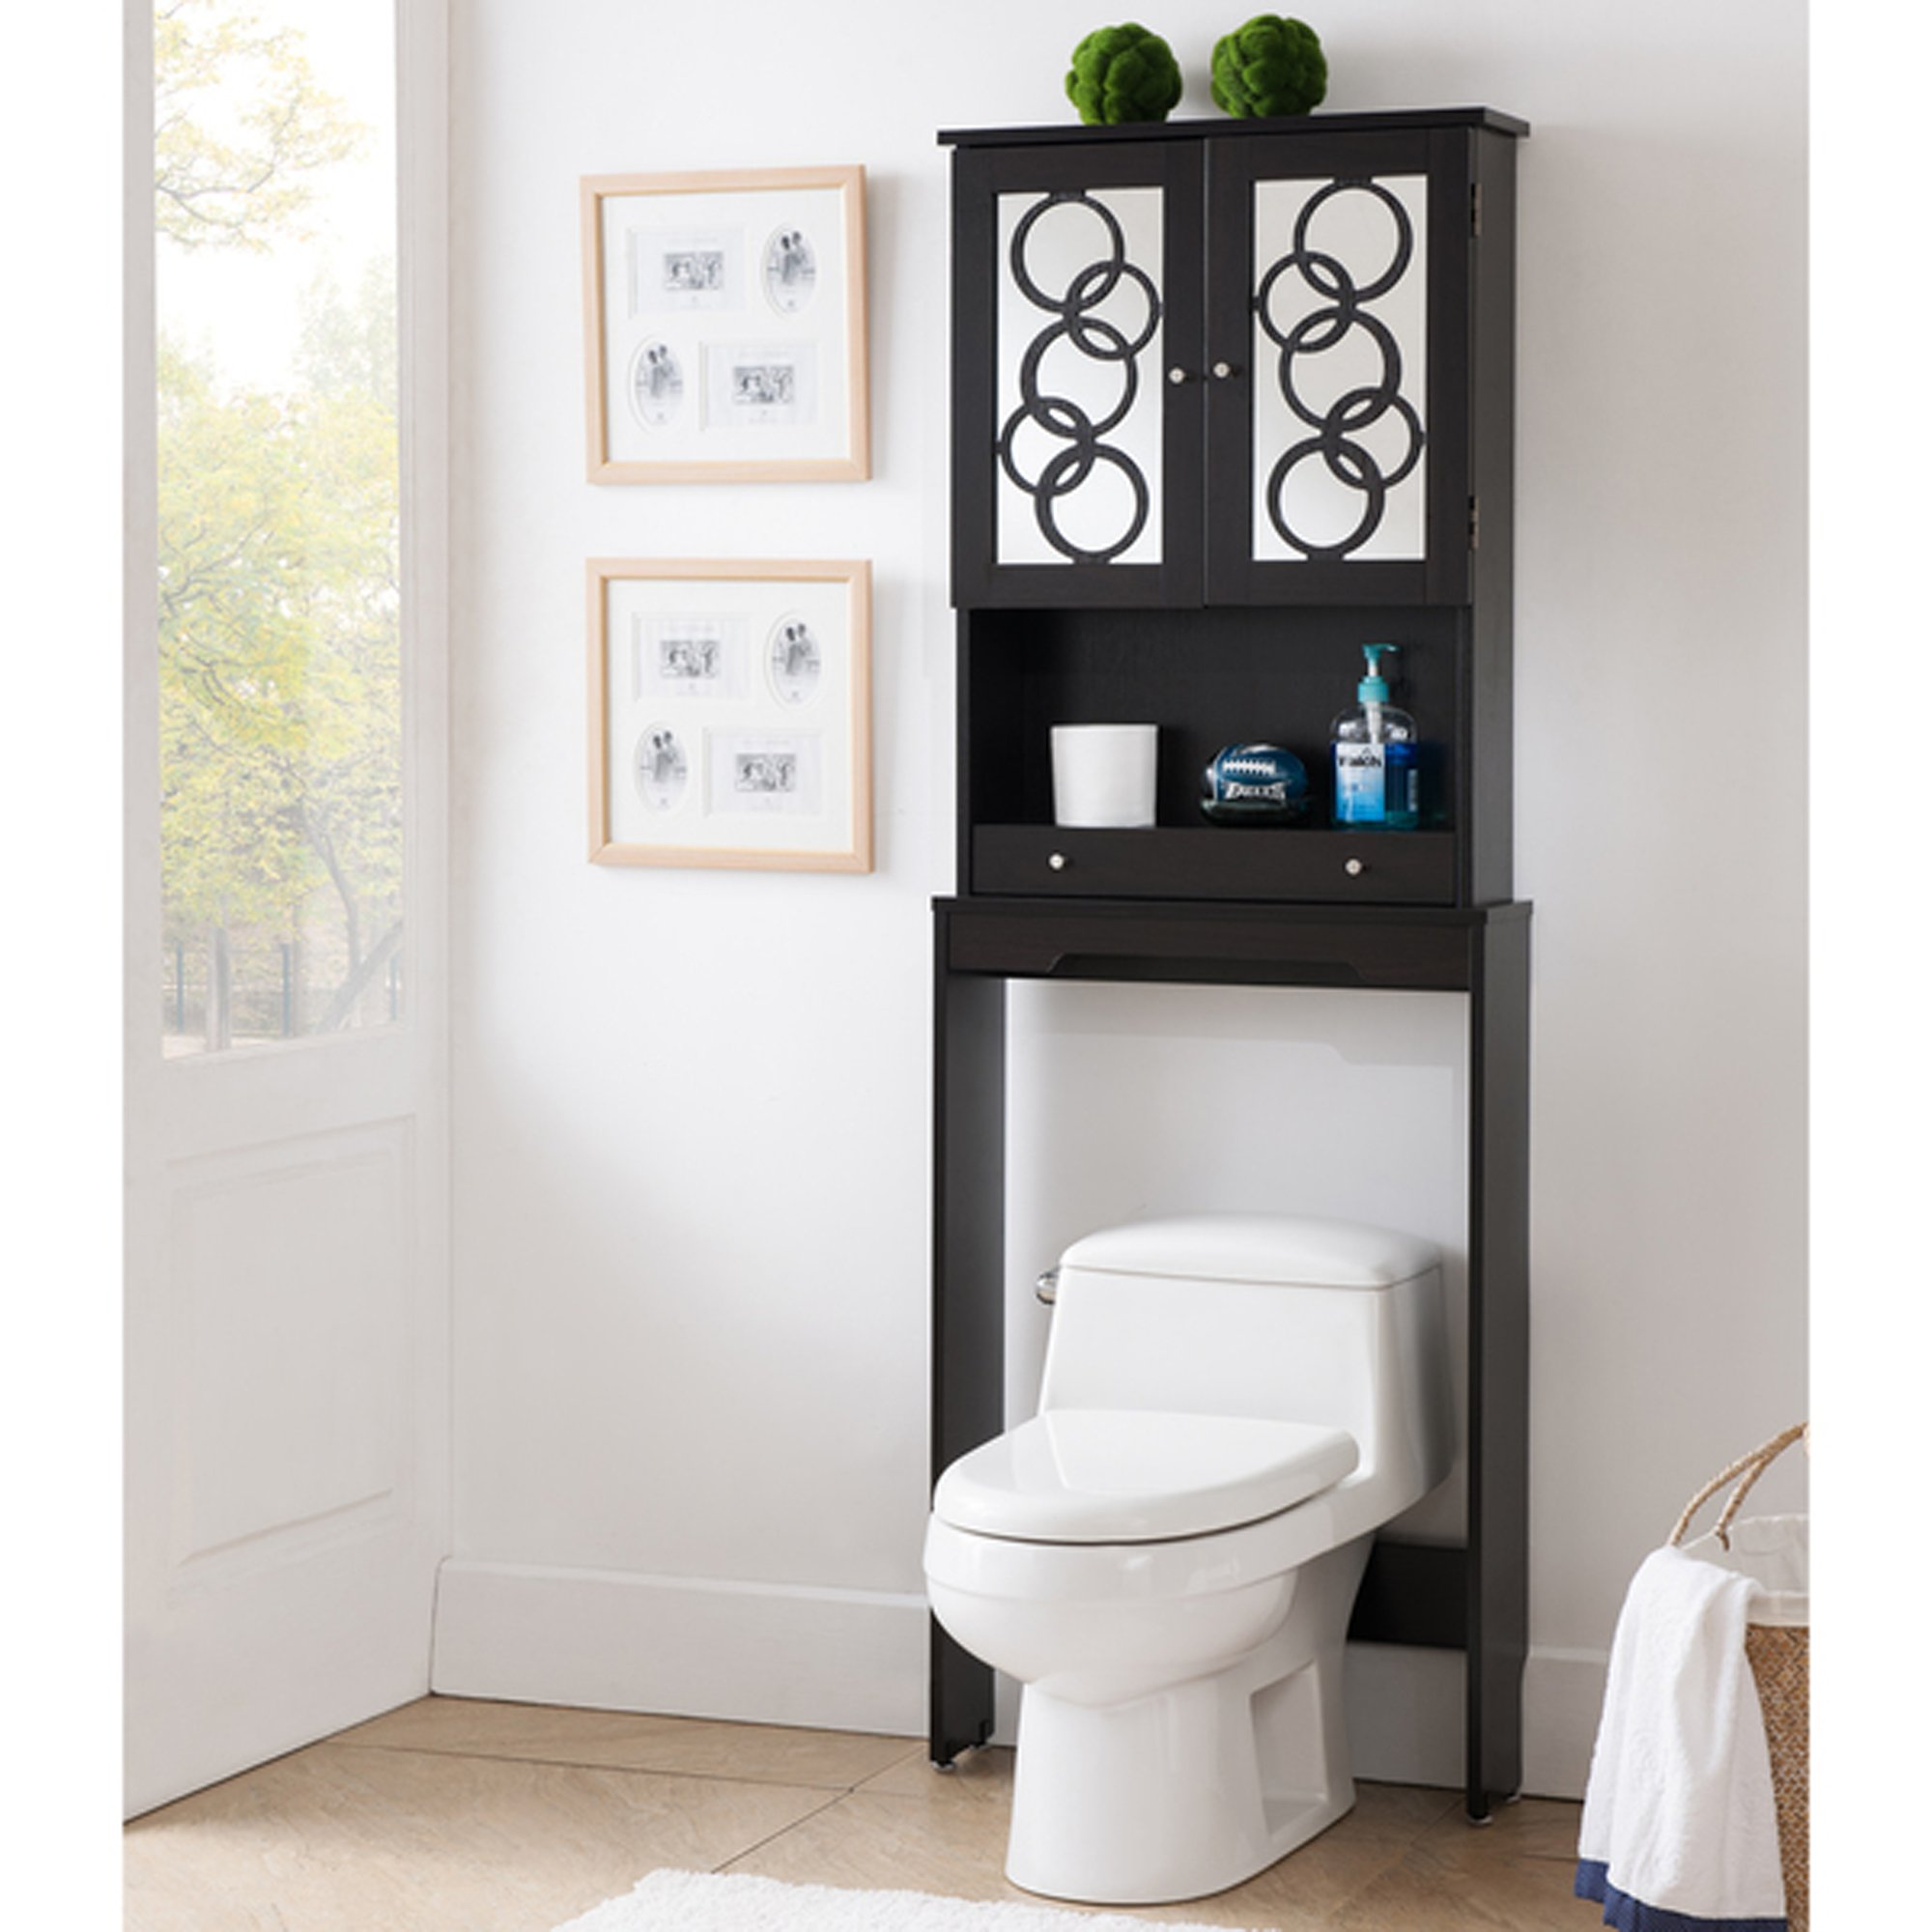 Over The Toilet Storage Cabinet Space Saver, Modern Organizer With Mirrored Panel Doors And Additional Drawer (Cappuccino)